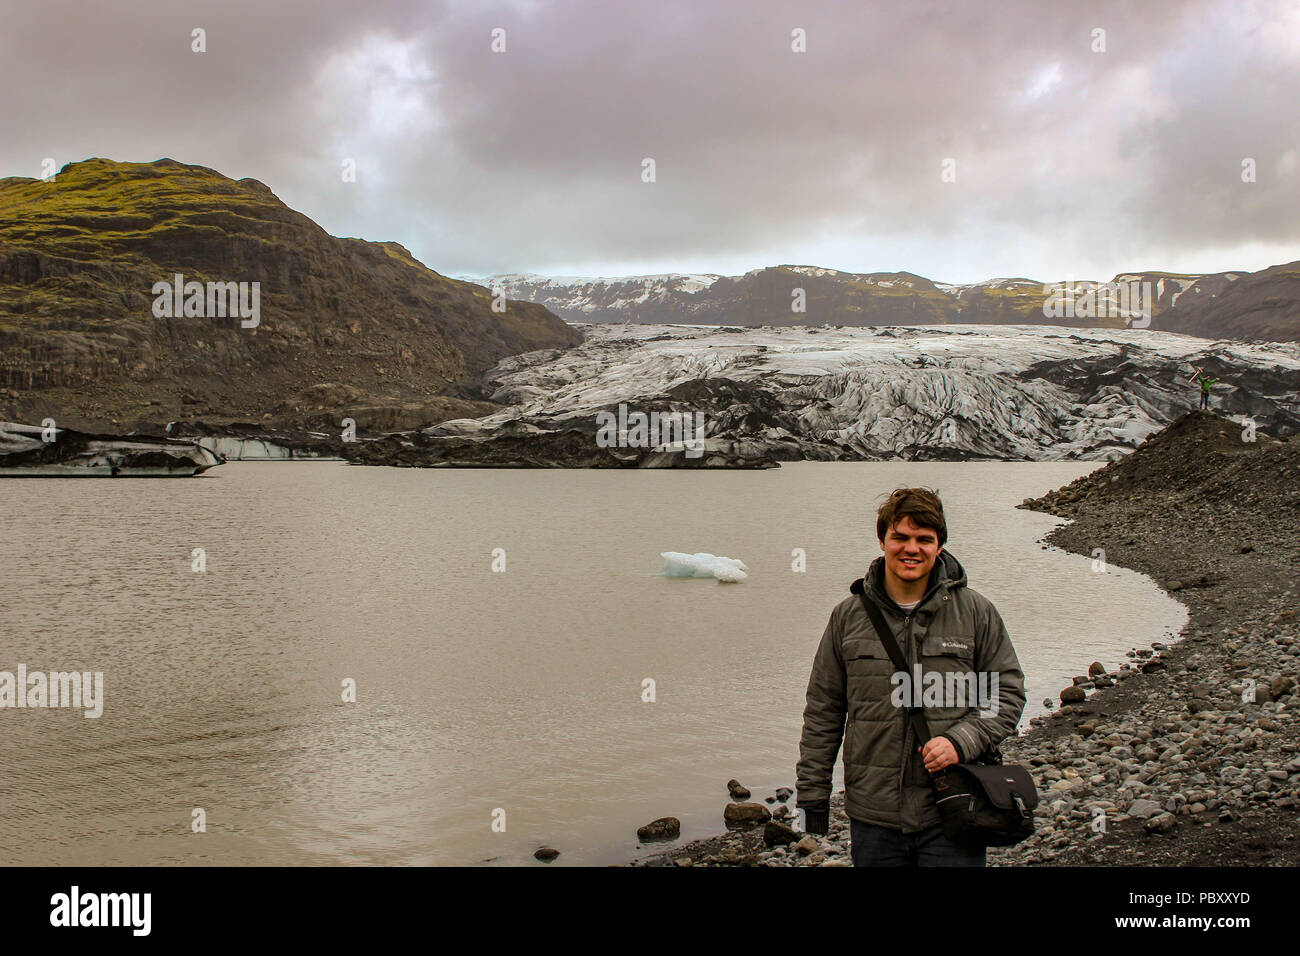 tourist stands by a glacier in Iceland on a rainy and depressing day, this kind of weather defines Iceland in the winter. - Stock Image